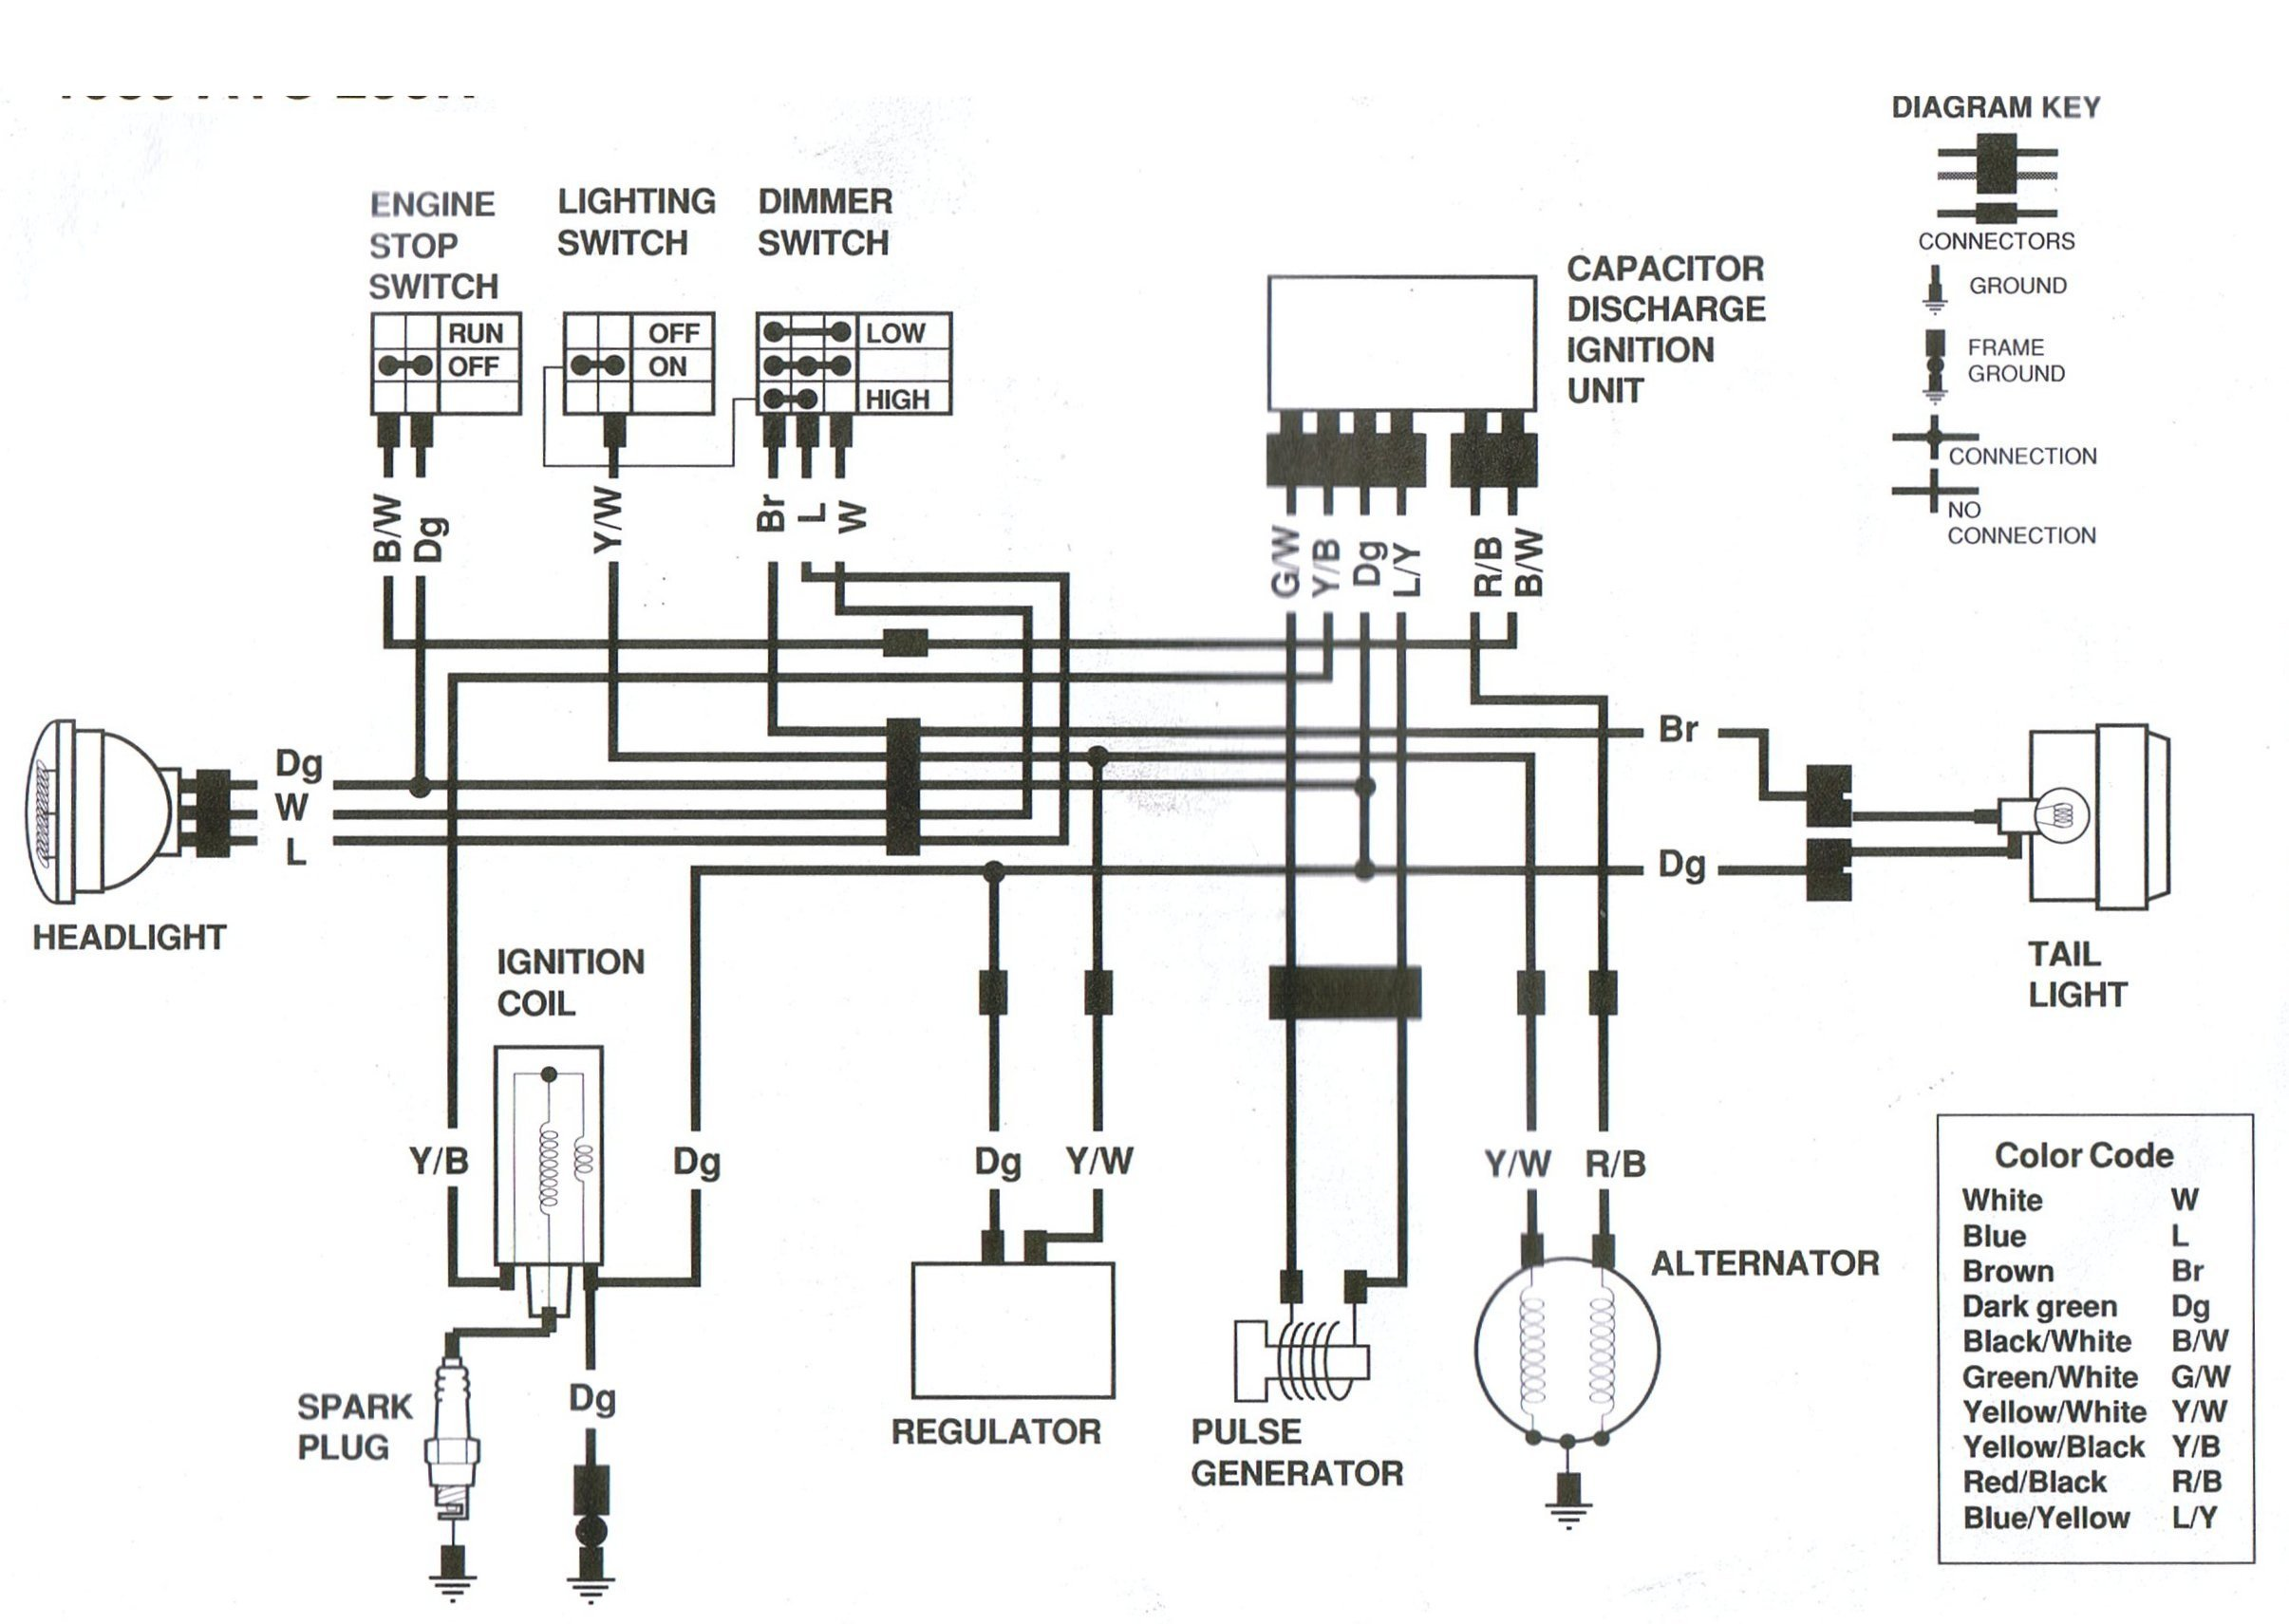 1995 starting system schematic diagram all about wiring diagrams